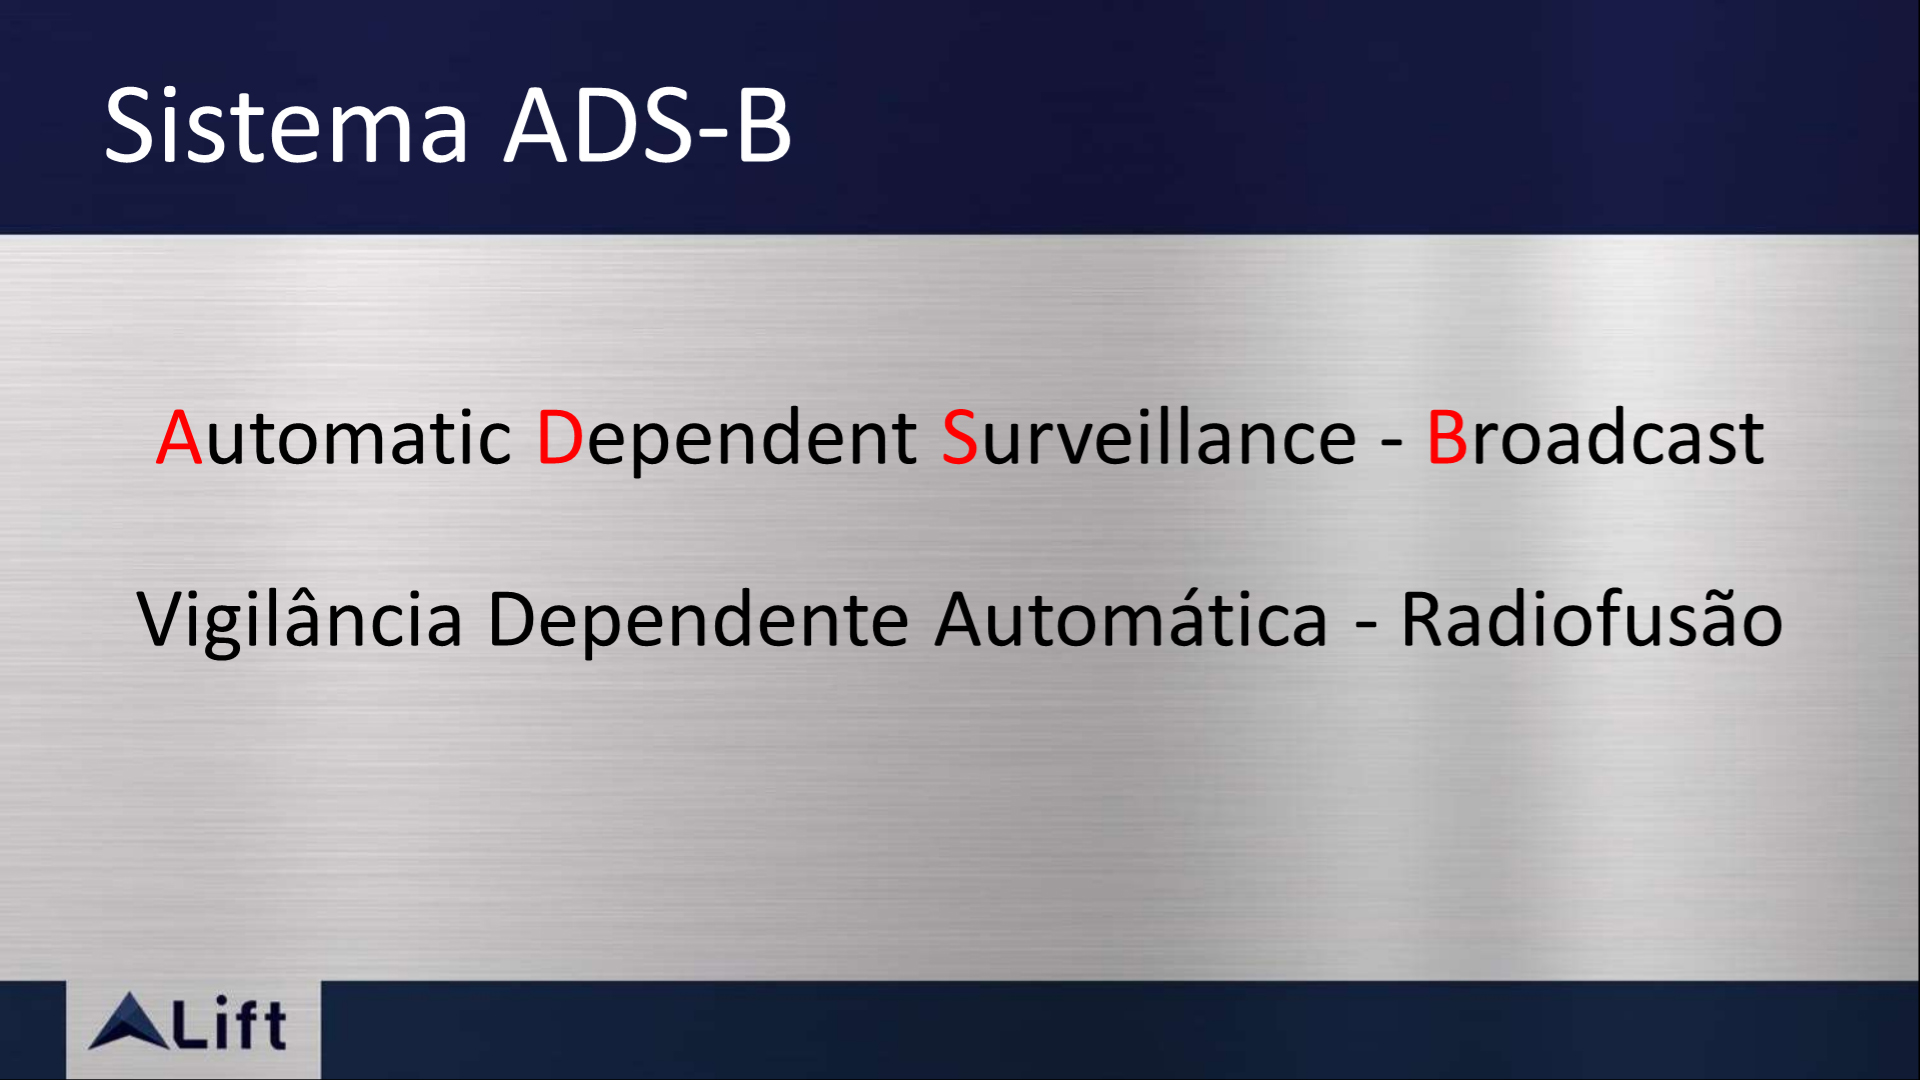 ADS-B: Automatic Dependent Surveillance